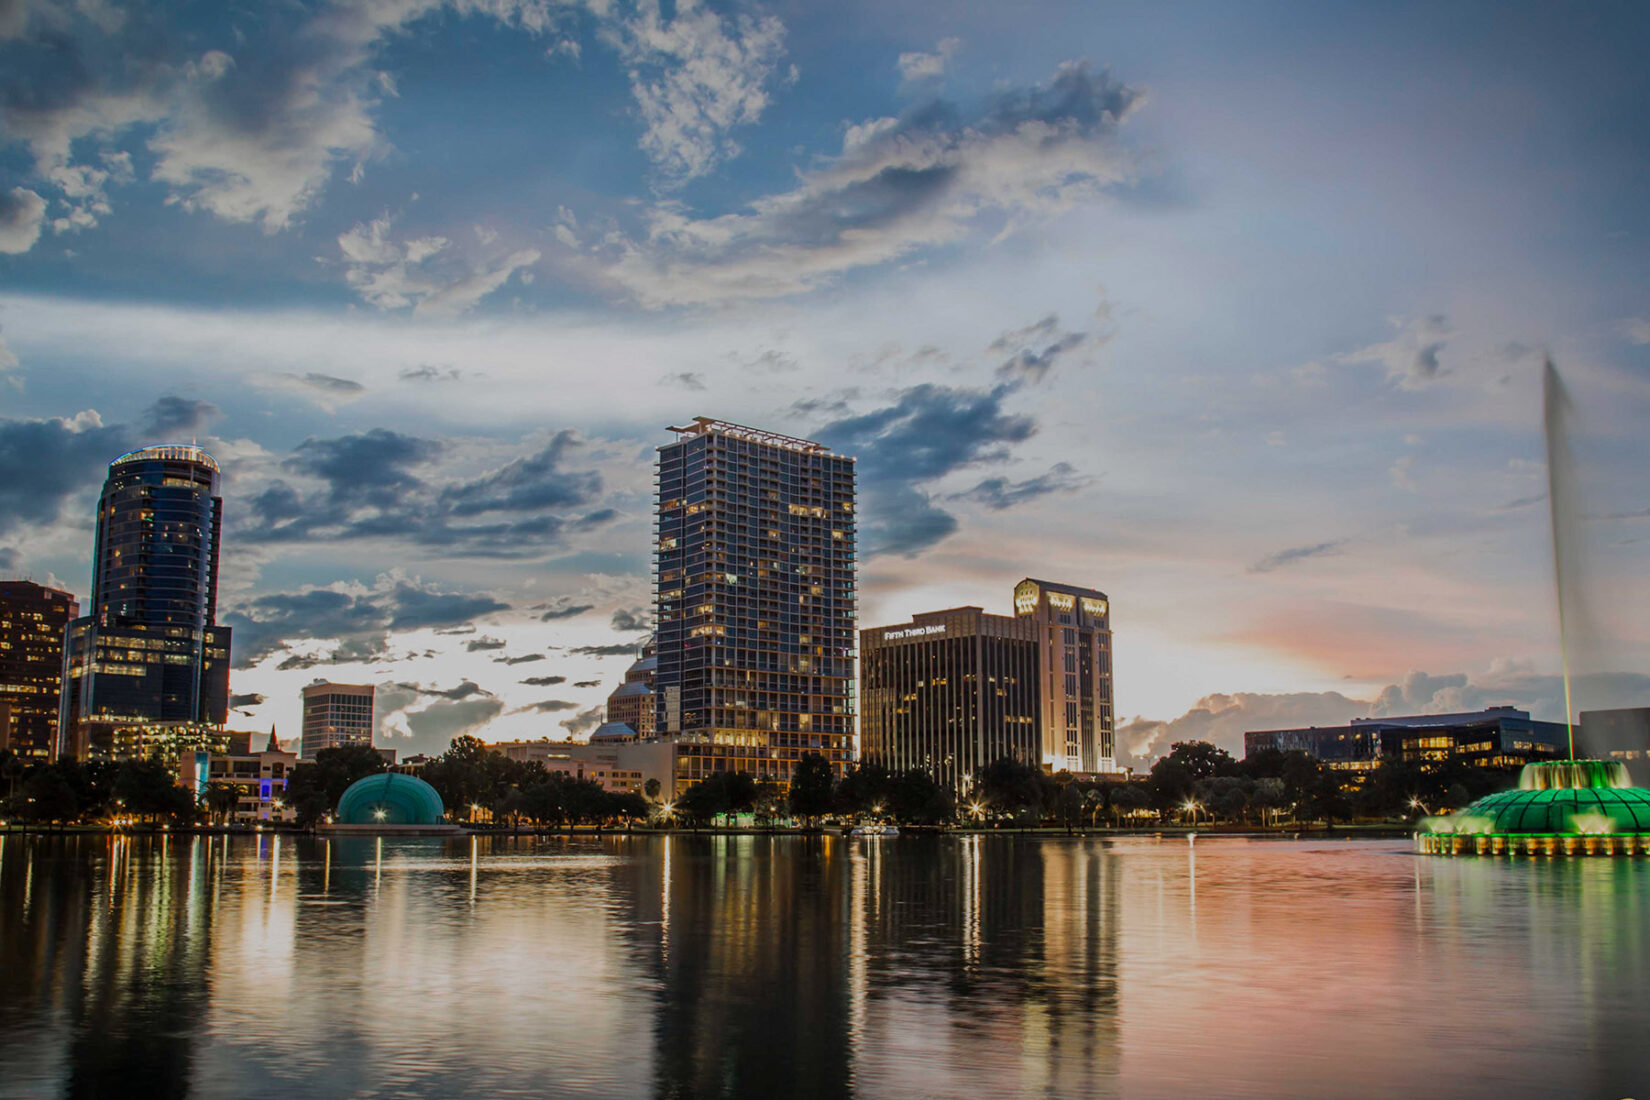 View of Downtown Orlando on Lake Eola at Sunset